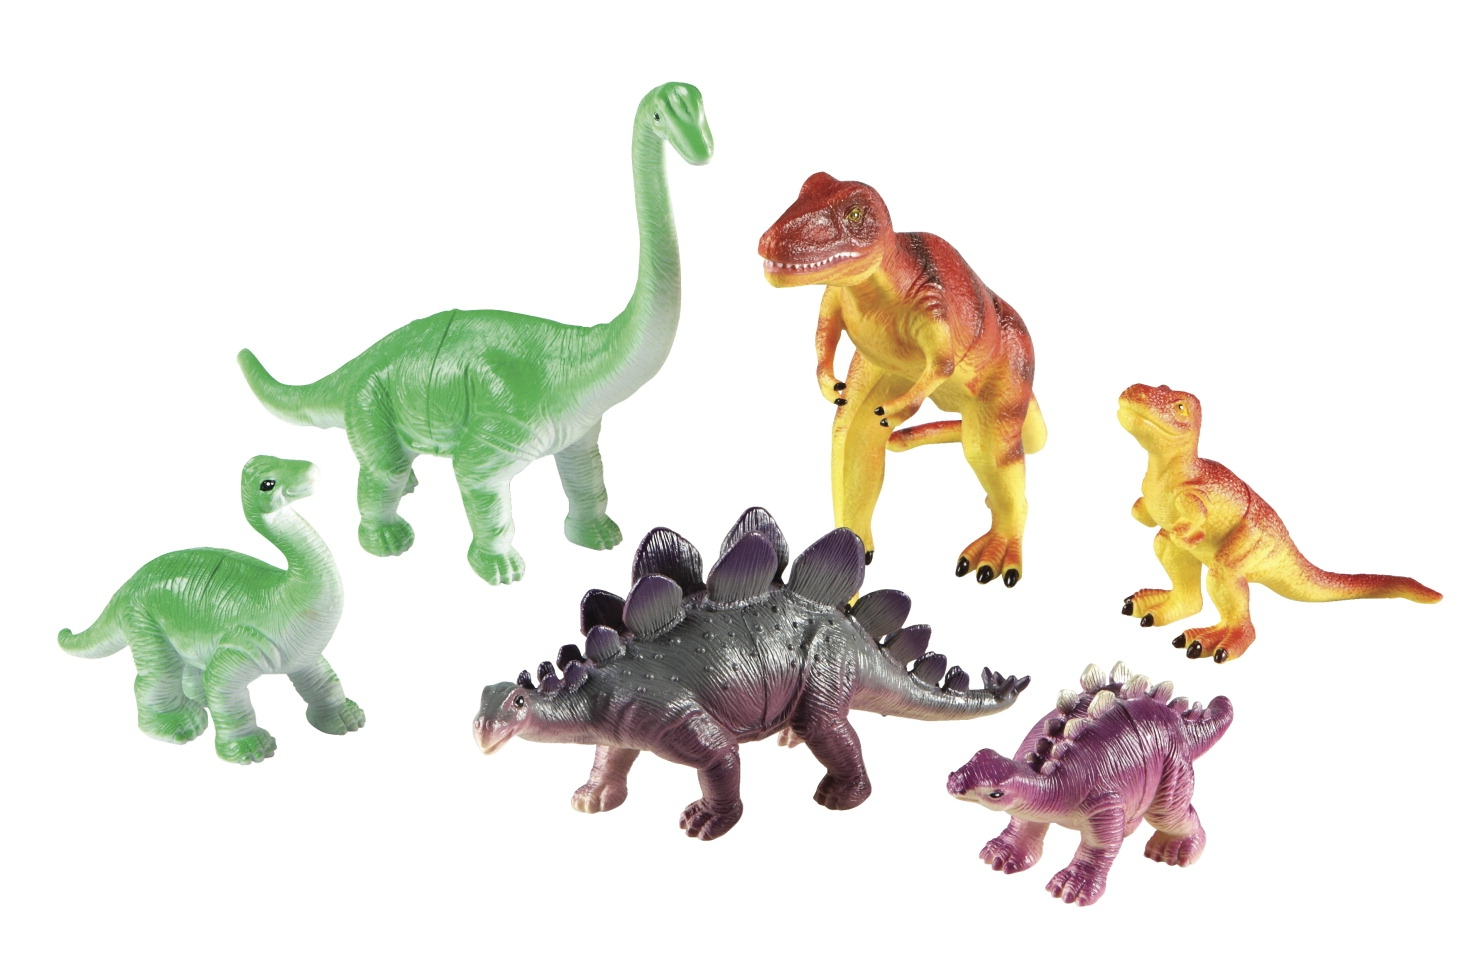 Learning Resources Jumbo Dinosaurs: Mommas And Babies; Set Of 6 - 1533481 - Instructional Materials Resources Science Activities Equipment Physical Science Projects Books 1533481